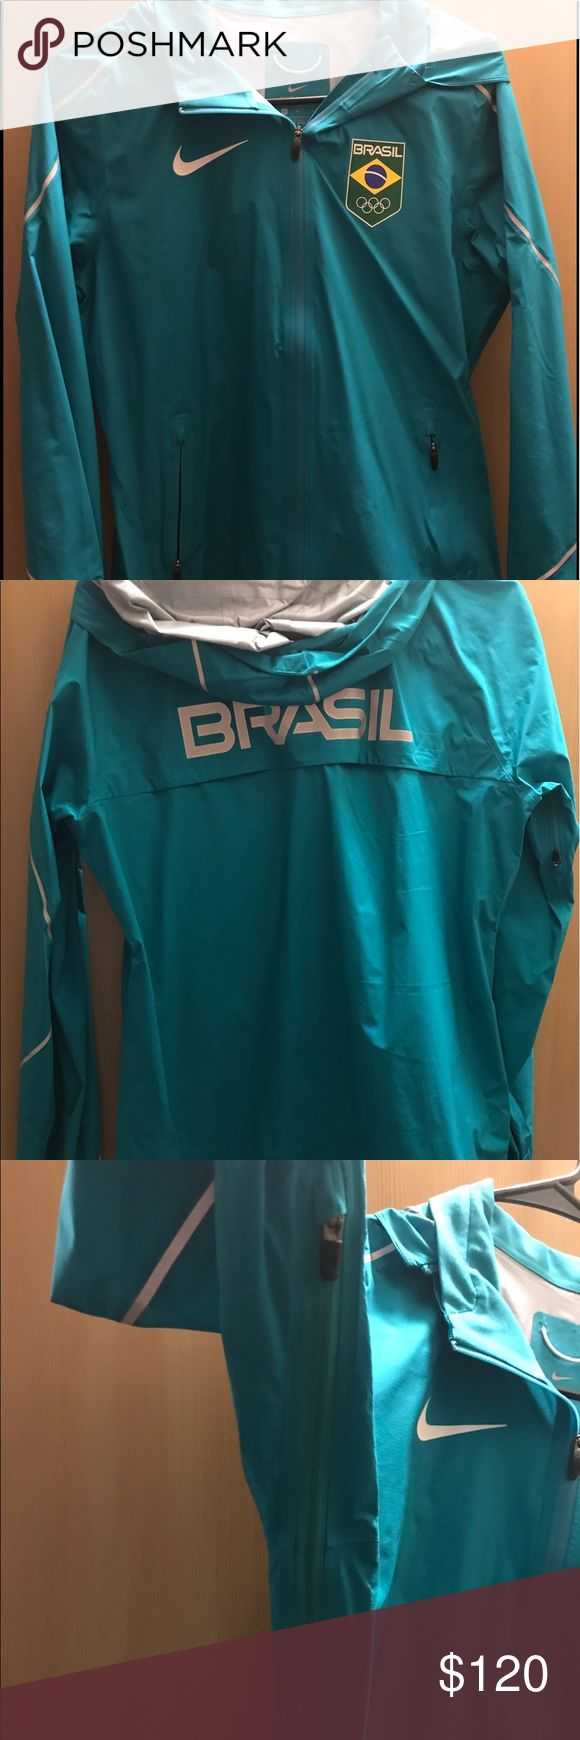 "Nike shield Olympic team Brazil running jacket NWOT.  Retails super expensive at the time and I don't think they sell/make this jacket anymore. Women's size medium. ""Swishy"" material, very light weight. Hood and zippers under arm pits.  Has drawstring on bottom to tighten for size. Nike Jackets & Coats Utility Jackets"